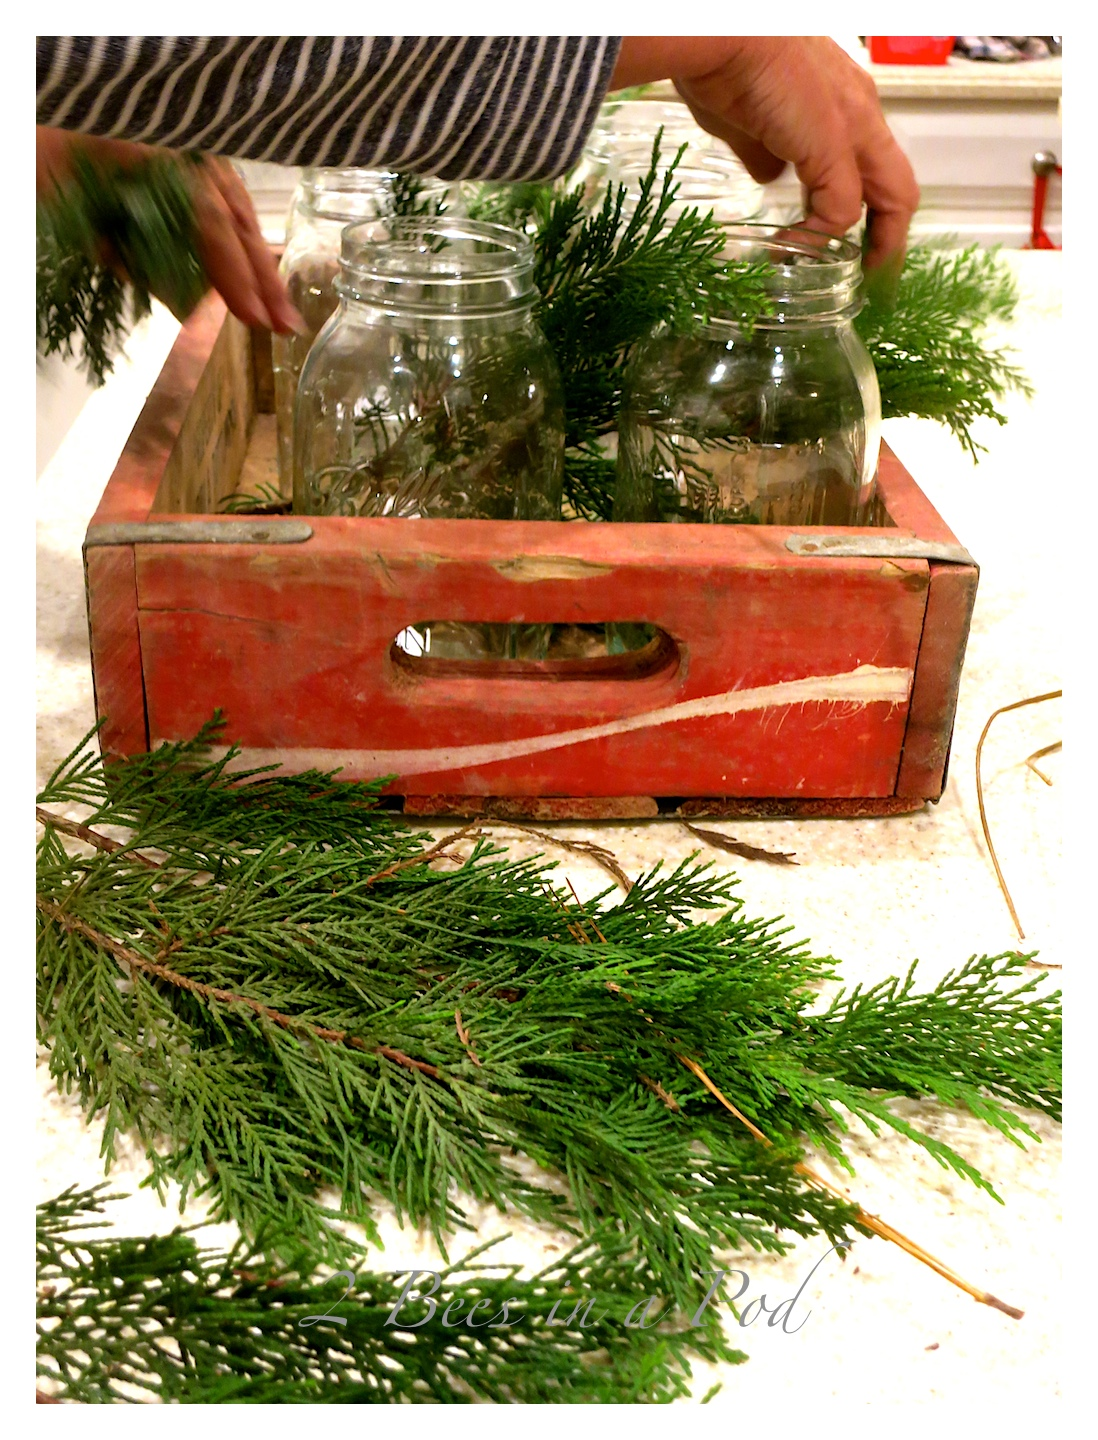 I used a vintage Coke crate as Christmas centerpiece by adding Mason jars, tea lights, evergreen, pinecones and berries